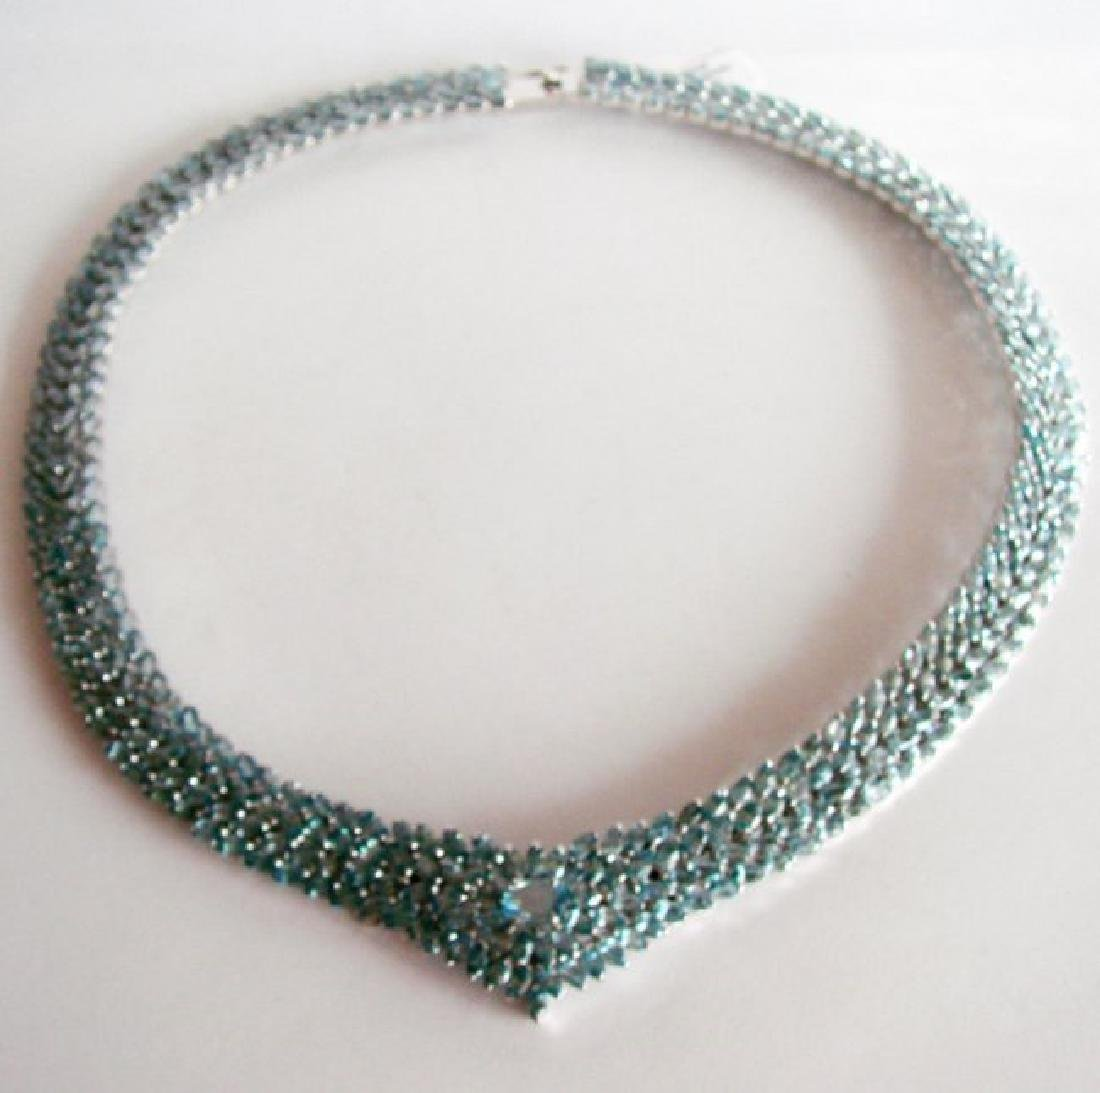 Natural Blue Zircon Necklaces 84.85Ct 18k W/g Overlay